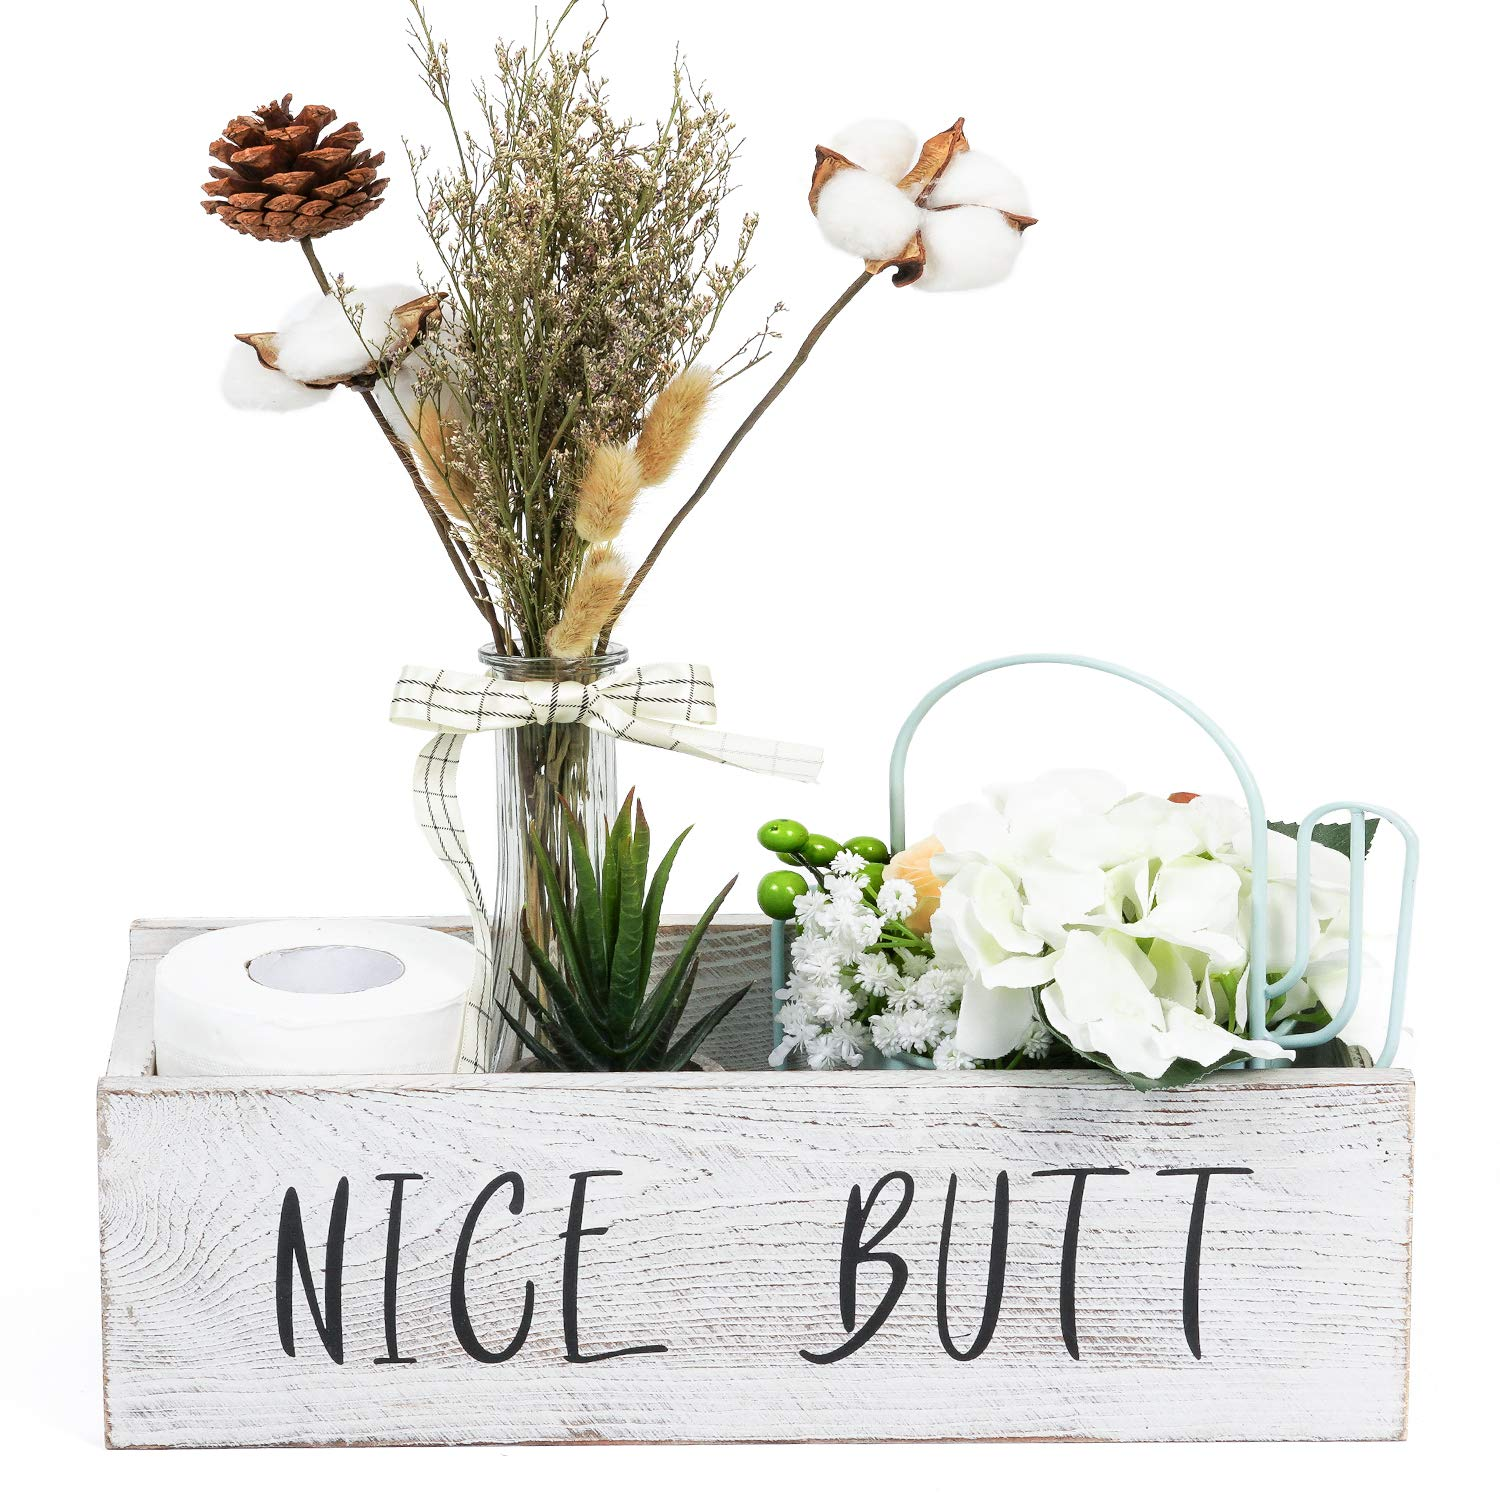 TIMEYARD Nice Butt Bathroom Decor Box - Toilet Paper Holder - Farmhouse Rustic Wood Crate Home Decor